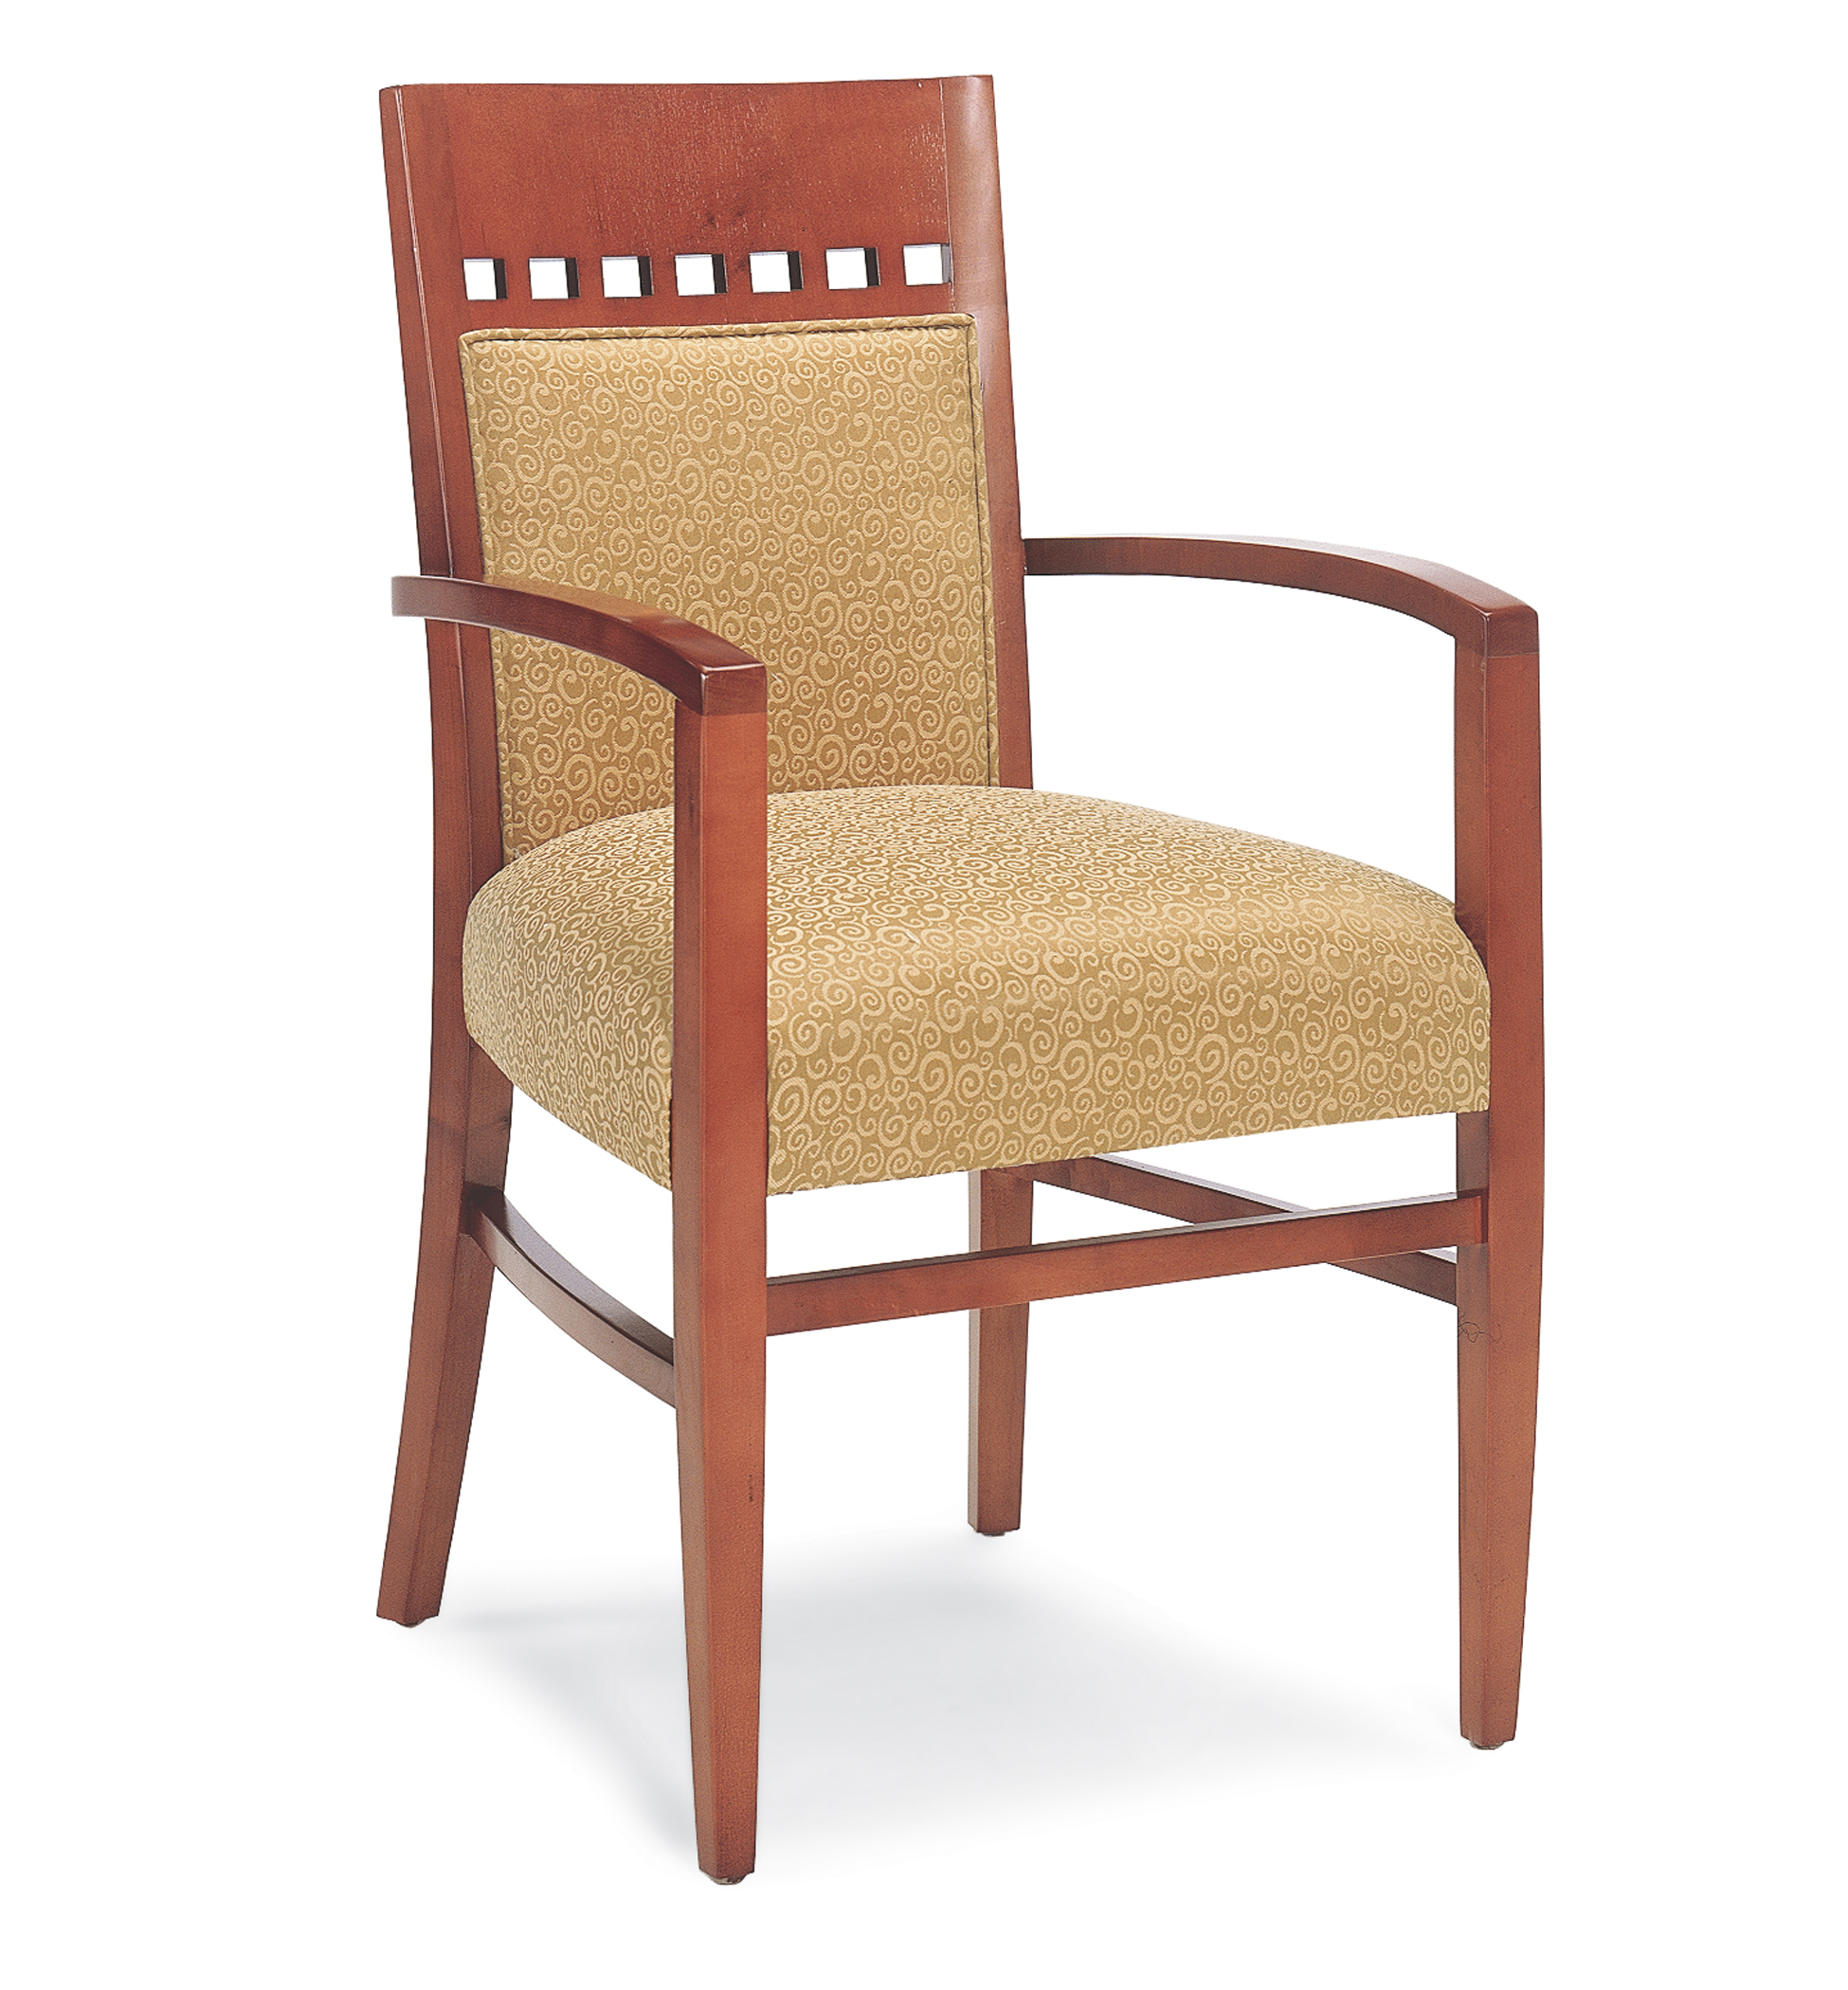 Wooden Arm Chair High Quality Hardwood Chairs Awesome Innovative Home Design